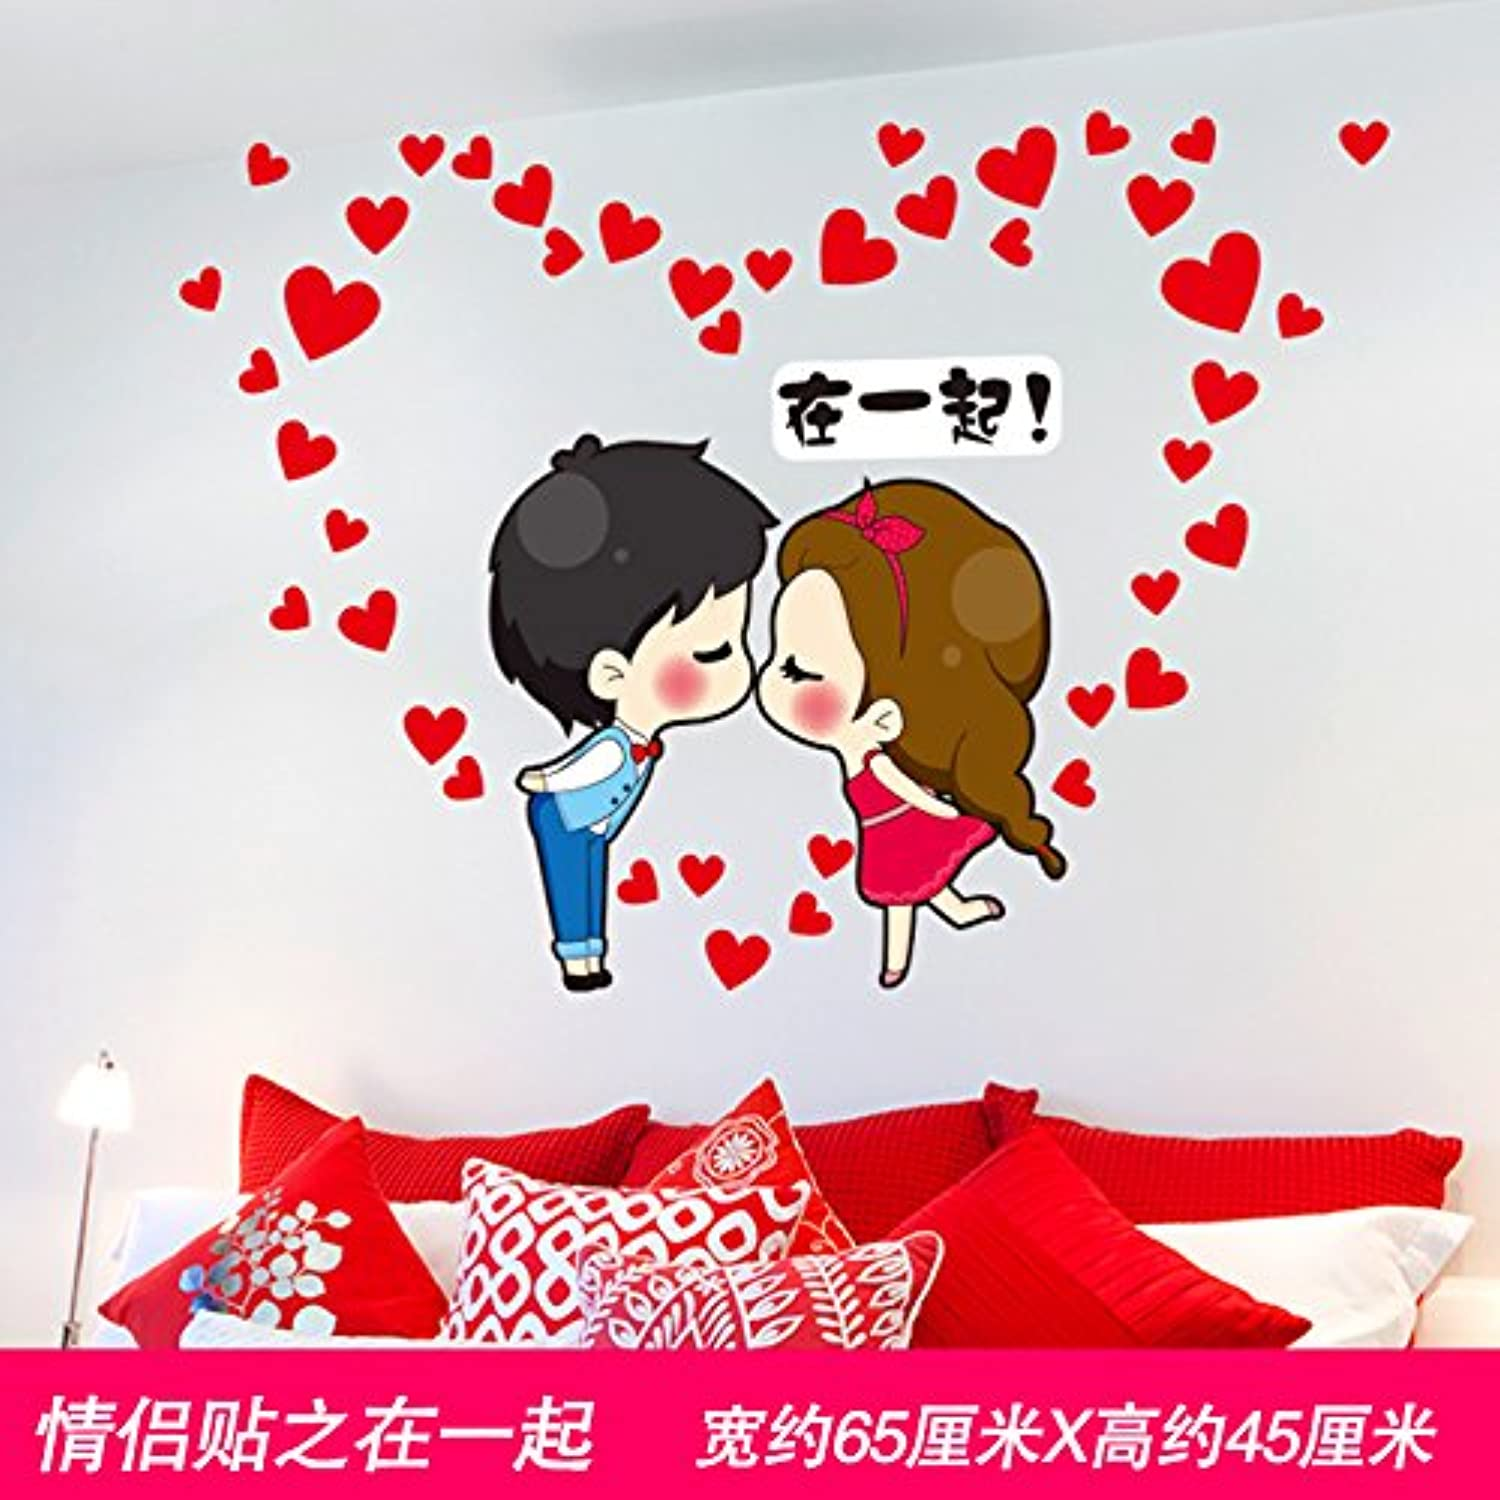 Znzbzt Wall Decals Personalized Stickers Bedroom Wall Decoration Wall Painting Wall Surface, Together with The Great